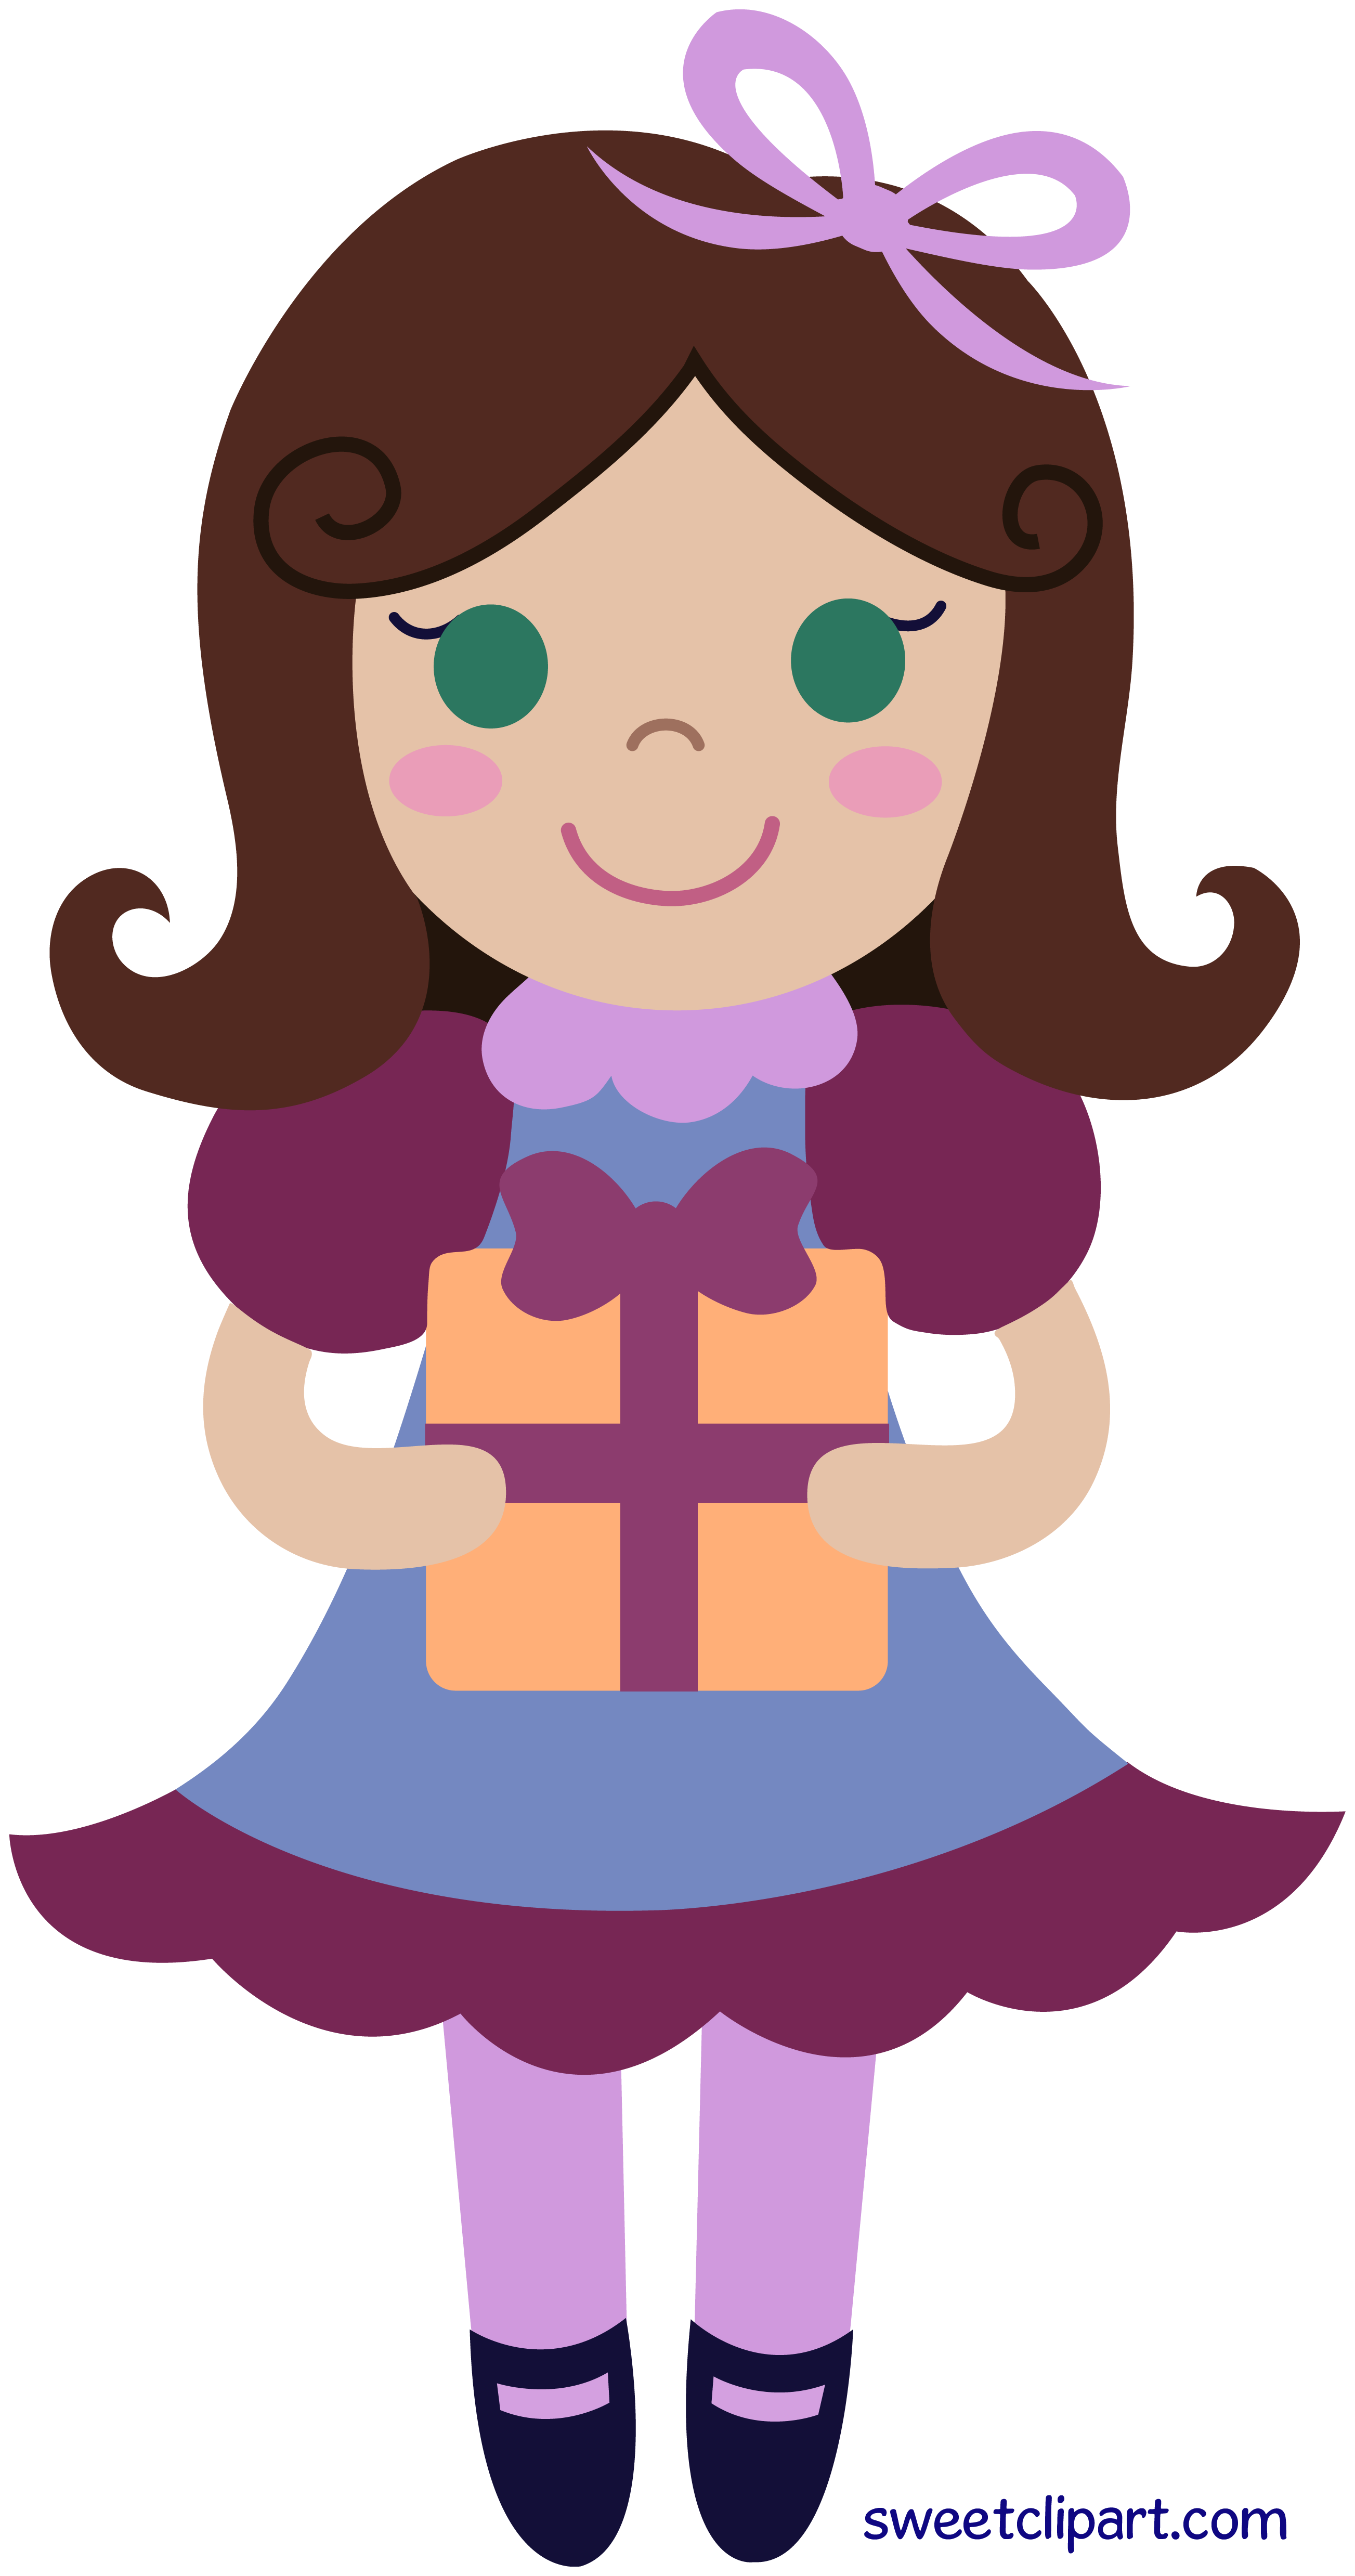 2606x4954 Birthday Girl With Gift Clip Art